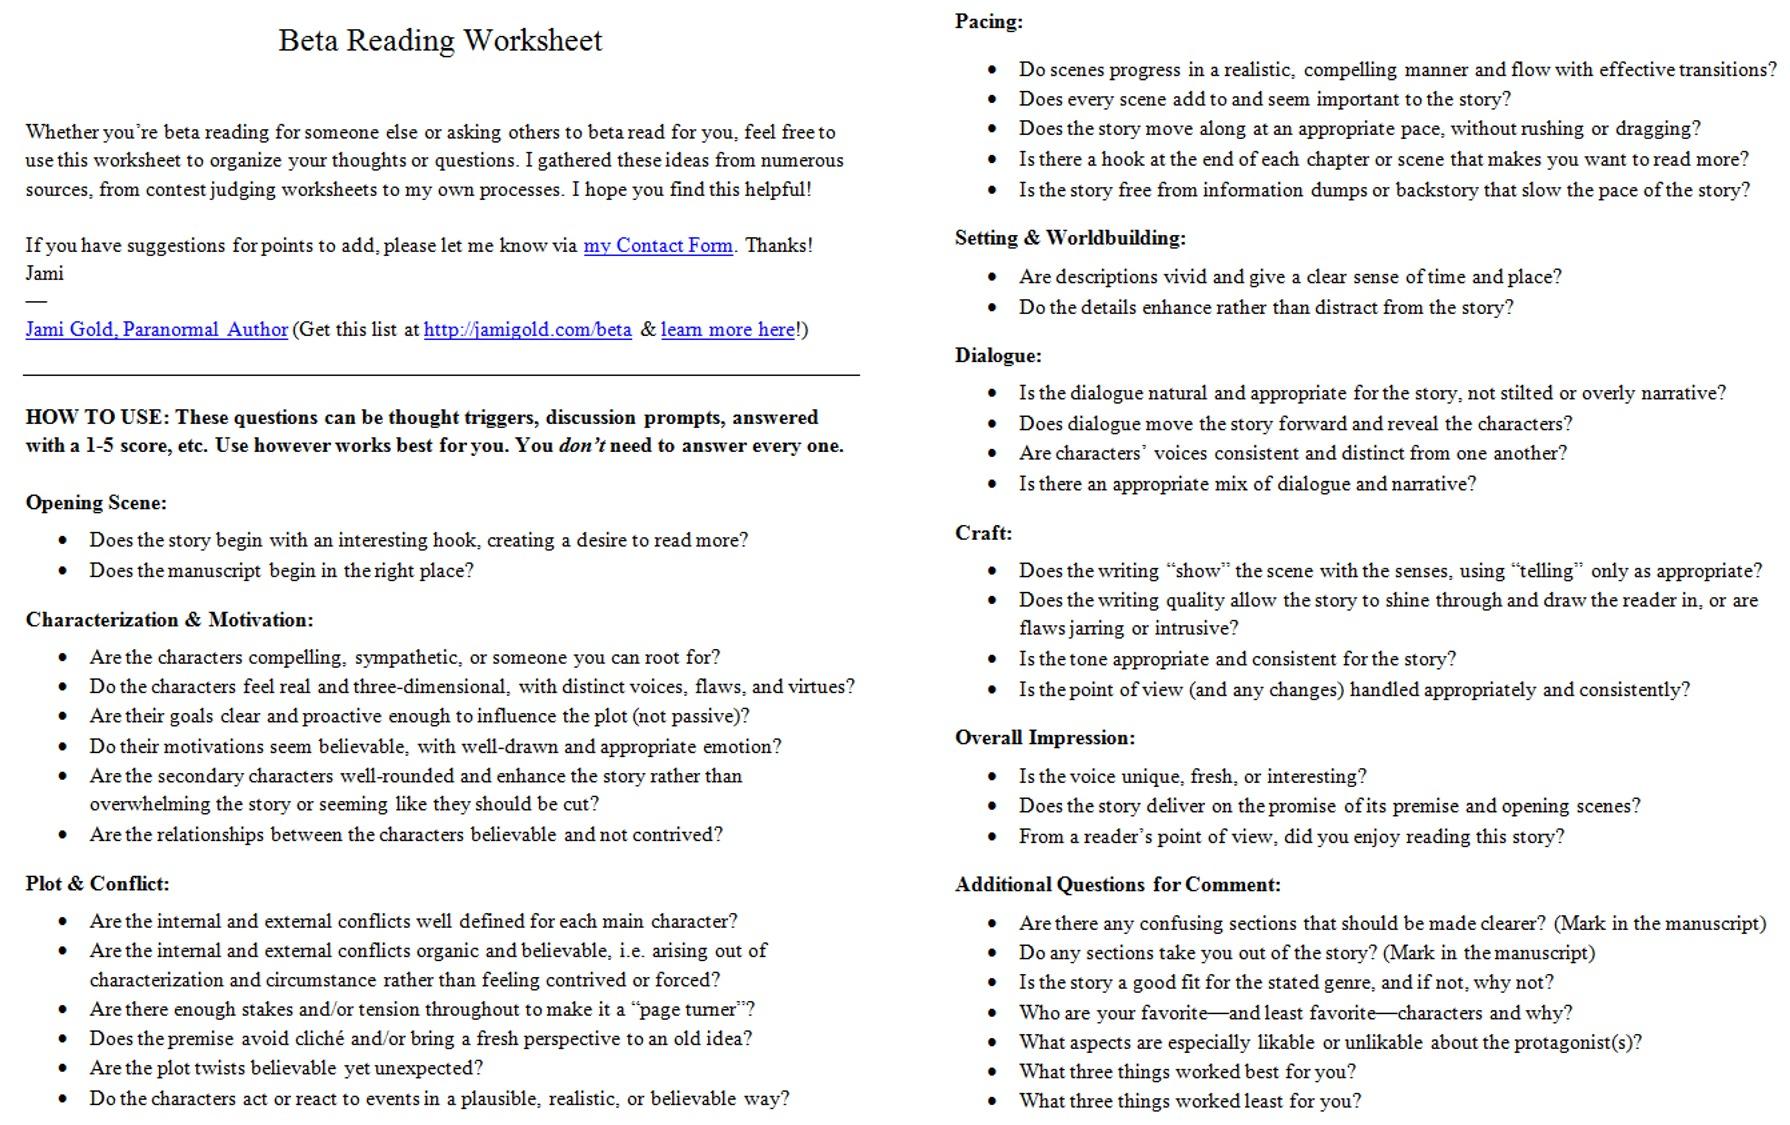 Weirdmailus  Stunning Worksheets For Writers  Jami Gold Paranormal Author With Likable Screen Shot Of The Twopage Beta Reading Worksheet With Cool Context Clues Worksheets With Answers Also Worksheet Adding Fractions In Addition Letter H Handwriting Worksheets And Powers And Indices Worksheet As Well As Seasons Of The Year Worksheet Additionally Personification Ks Worksheets From Jamigoldcom With Weirdmailus  Likable Worksheets For Writers  Jami Gold Paranormal Author With Cool Screen Shot Of The Twopage Beta Reading Worksheet And Stunning Context Clues Worksheets With Answers Also Worksheet Adding Fractions In Addition Letter H Handwriting Worksheets From Jamigoldcom